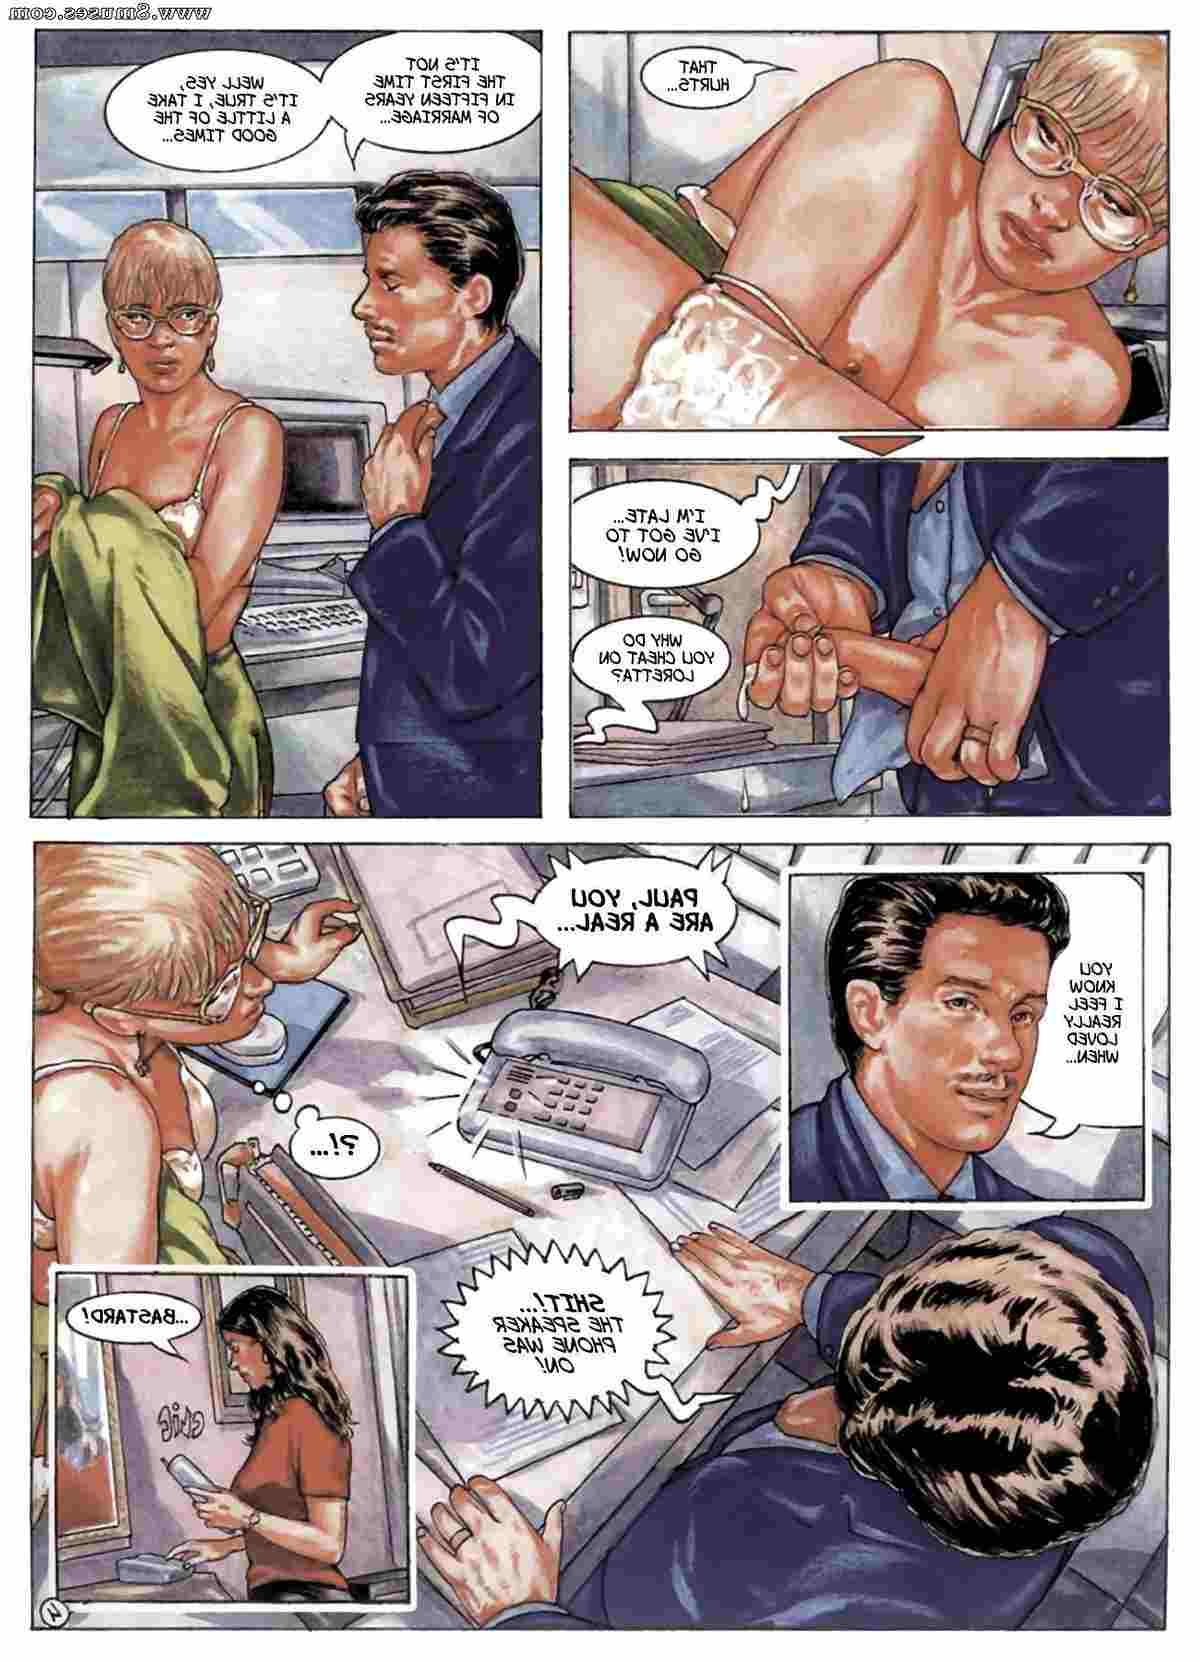 Selen-Comics/Beloved-Submission Beloved_Submission__8muses_-_Sex_and_Porn_Comics_26.jpg